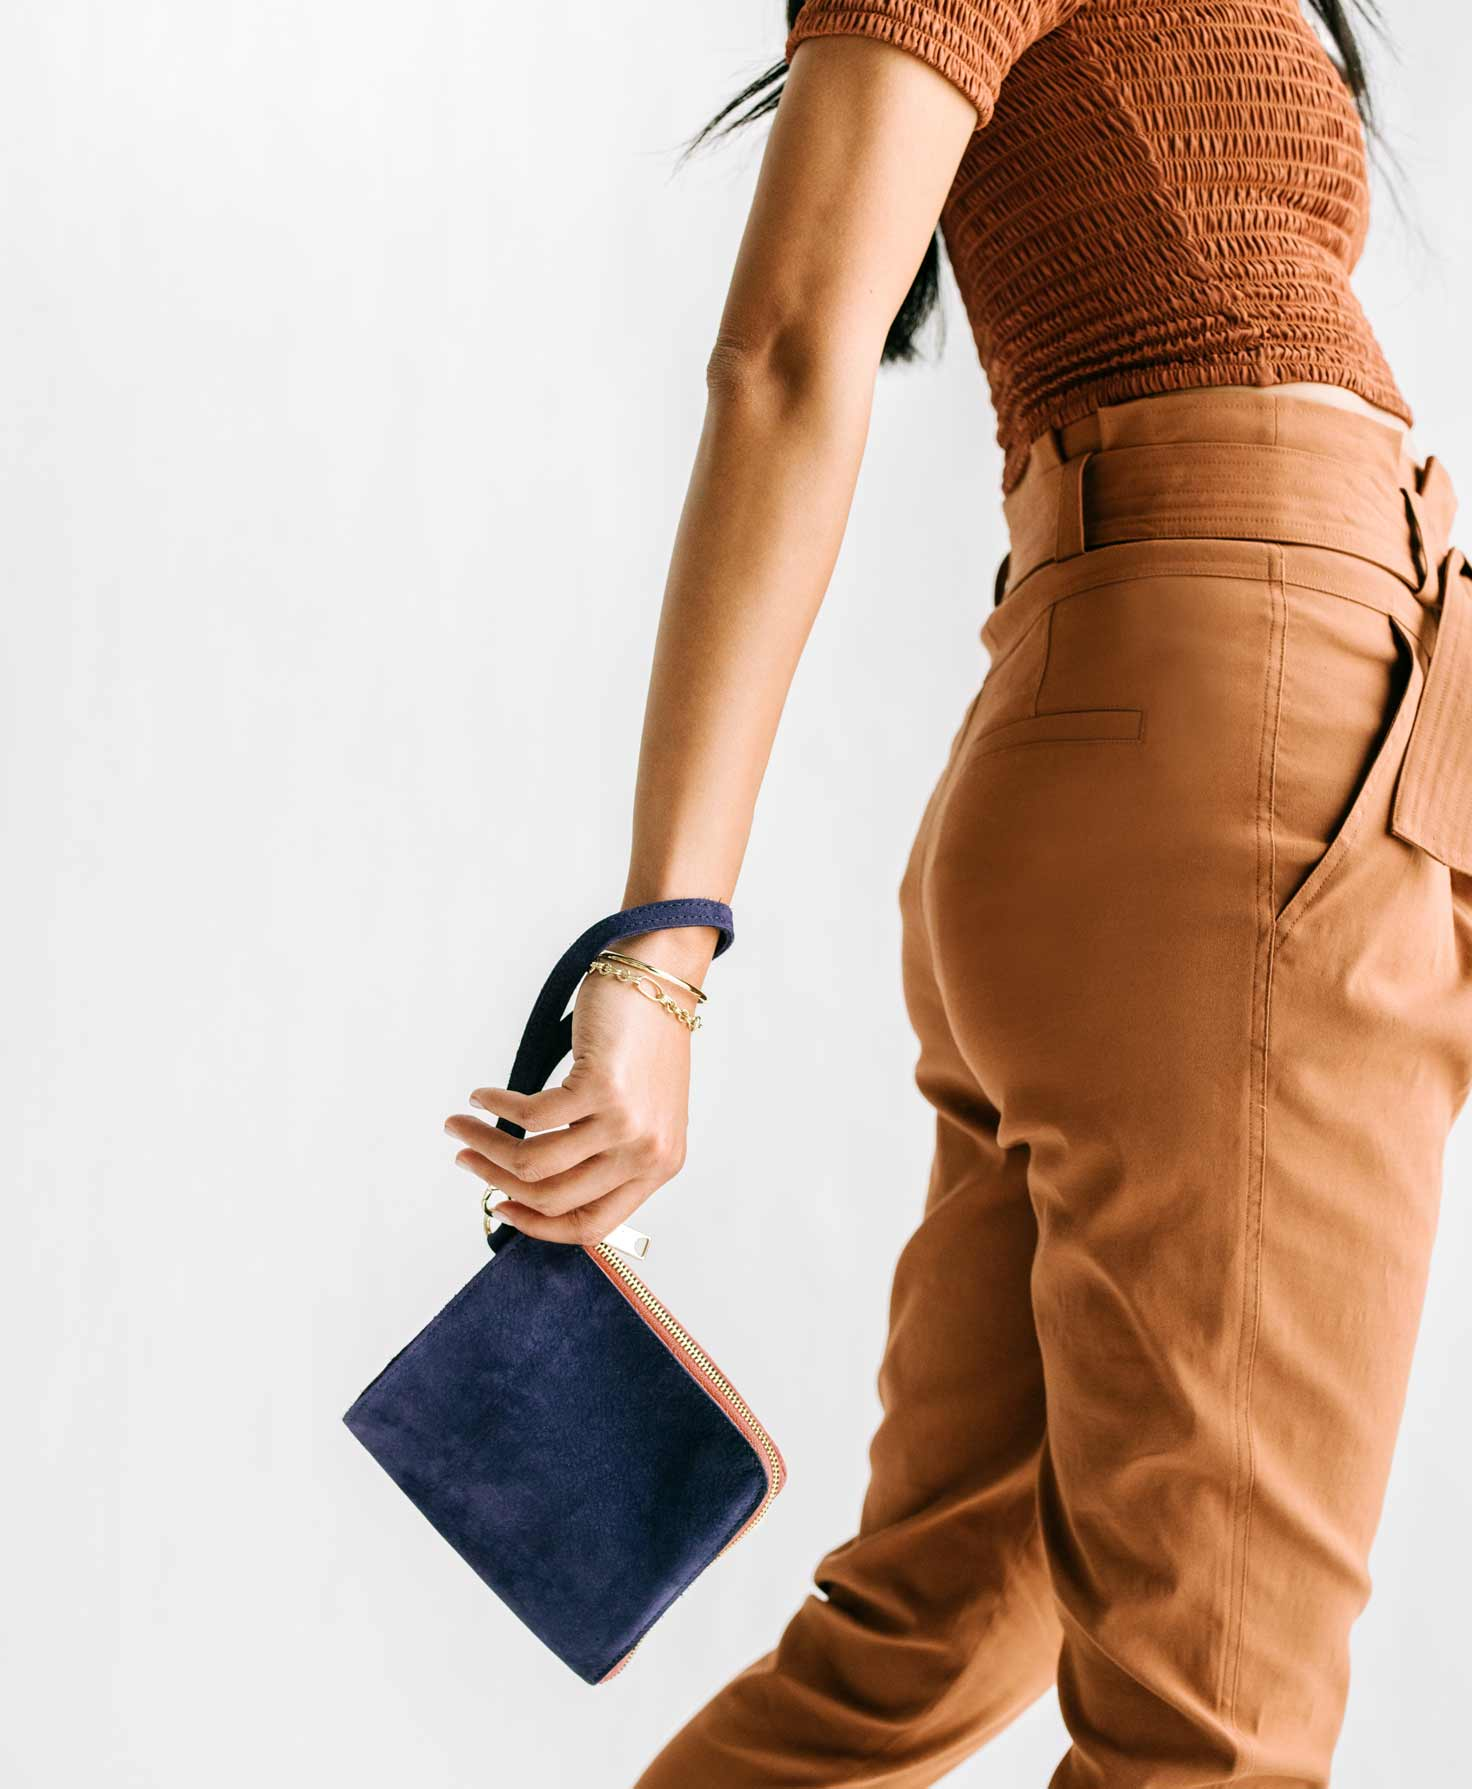 The image shows a model's back and arm, which swings behind her. She has the strap of the Amazement Pouch wrapped around her wrist, and the bag swings from her arm. The rich navy leather contrasts with the bag's shining brass zipper.